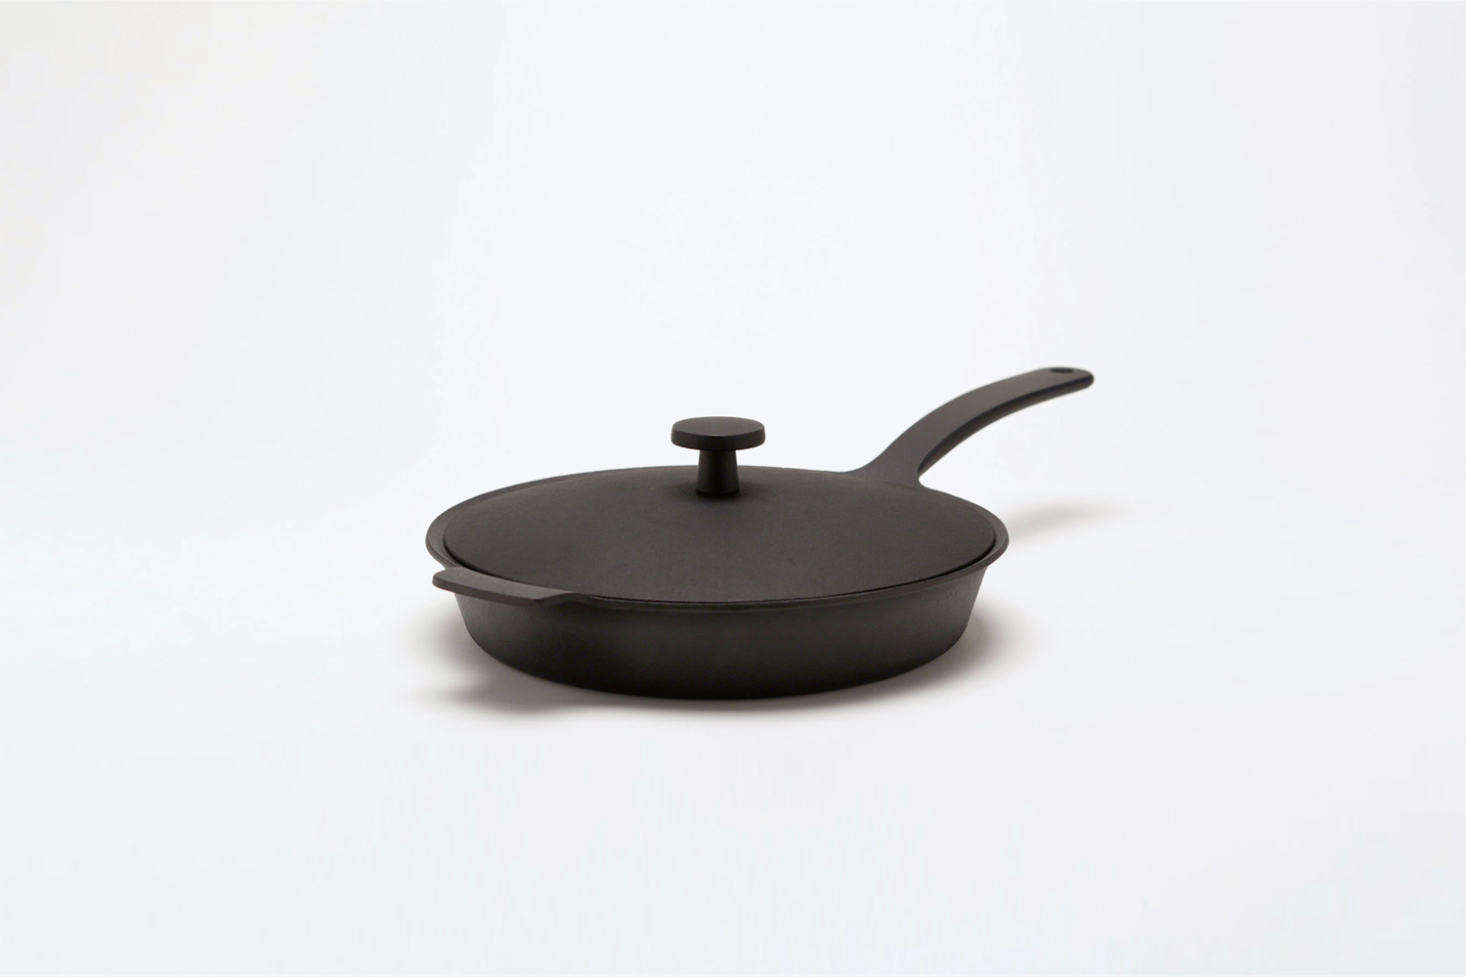 Jasper Morrison's Palma collection for Oigen, a line of cast iron kitchenware, includes a Frying Pan for £130 at Jasper Morrison Shop. For more on the collection, see our early post Iron Man, Jasper Morrison.